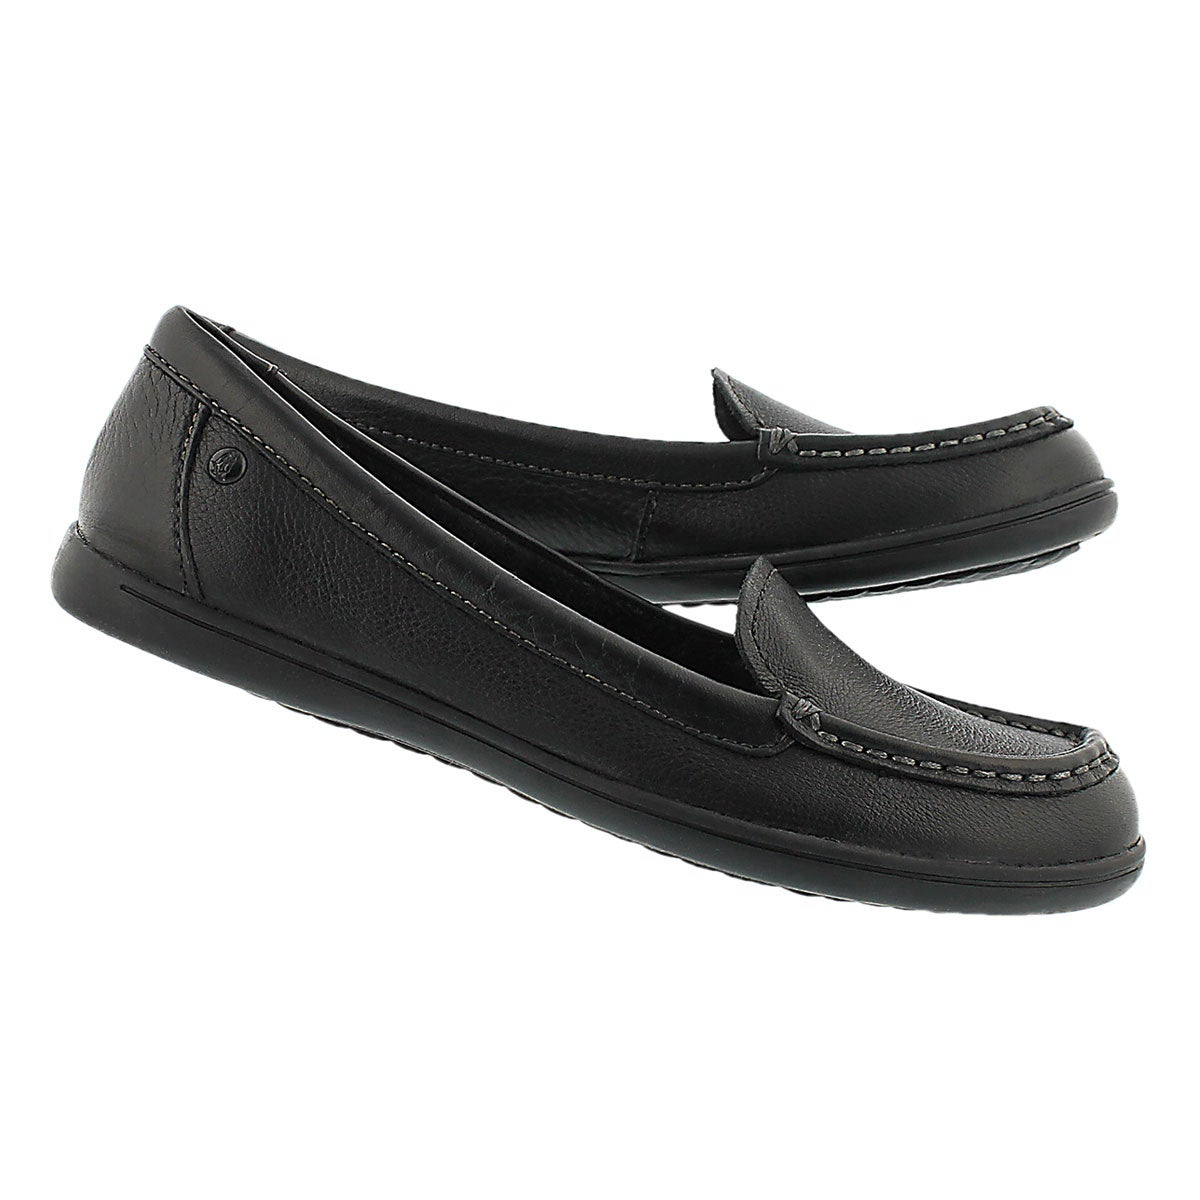 Lds Ryann Claudine black casual loafer